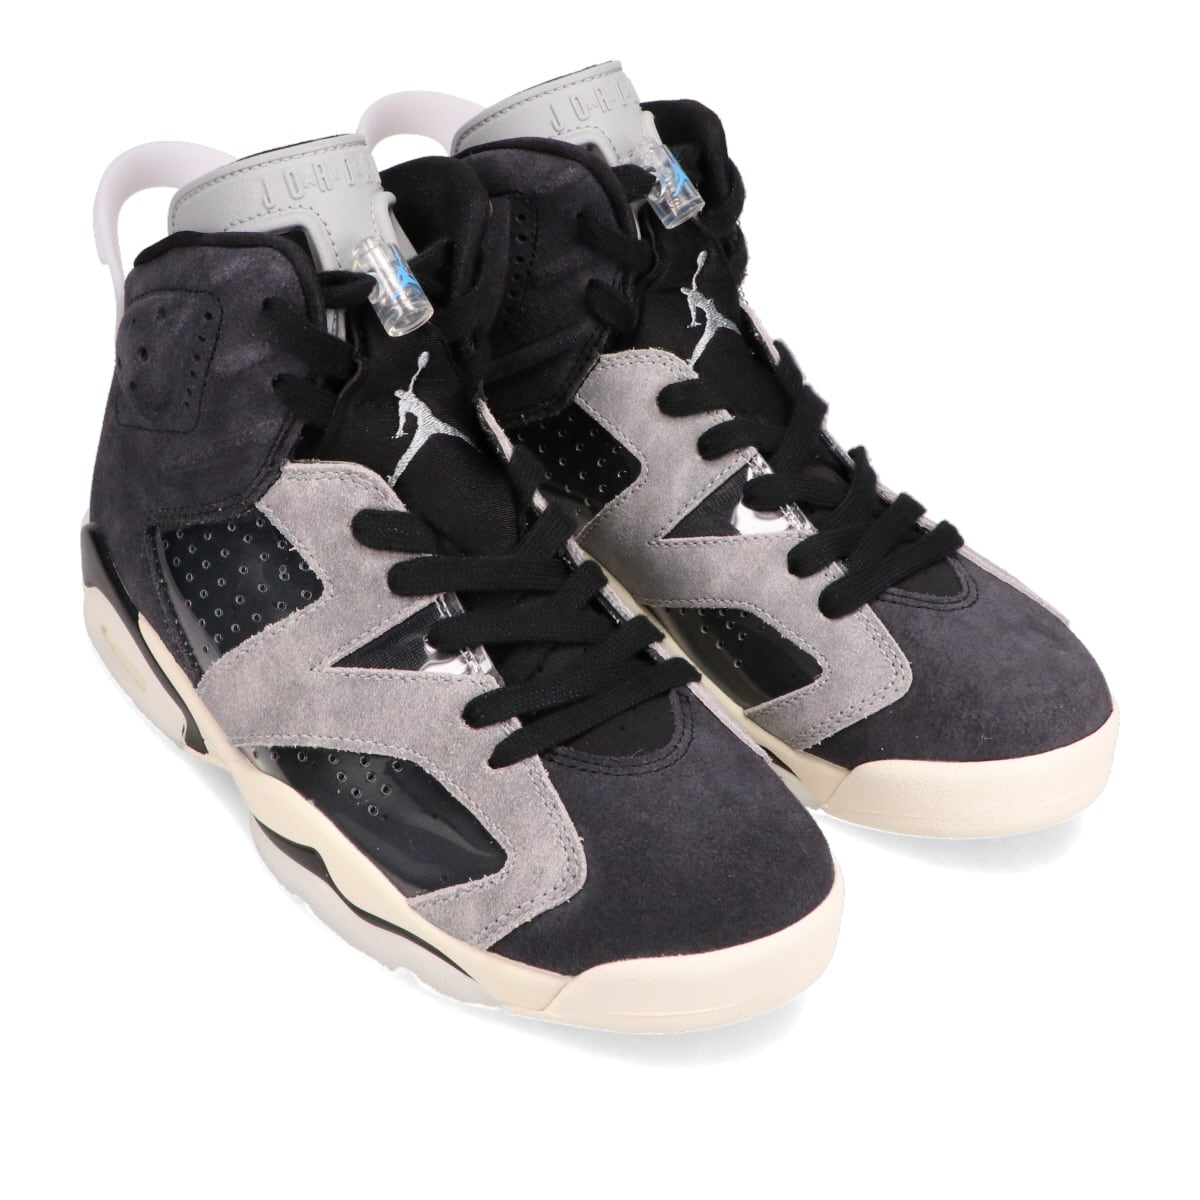 JORDAN BRAND WMNS AIR JORDAN 6 RETRO BLACK/CHROME-LT SMOKE GREY-SAIL 20FA-I_photo_large